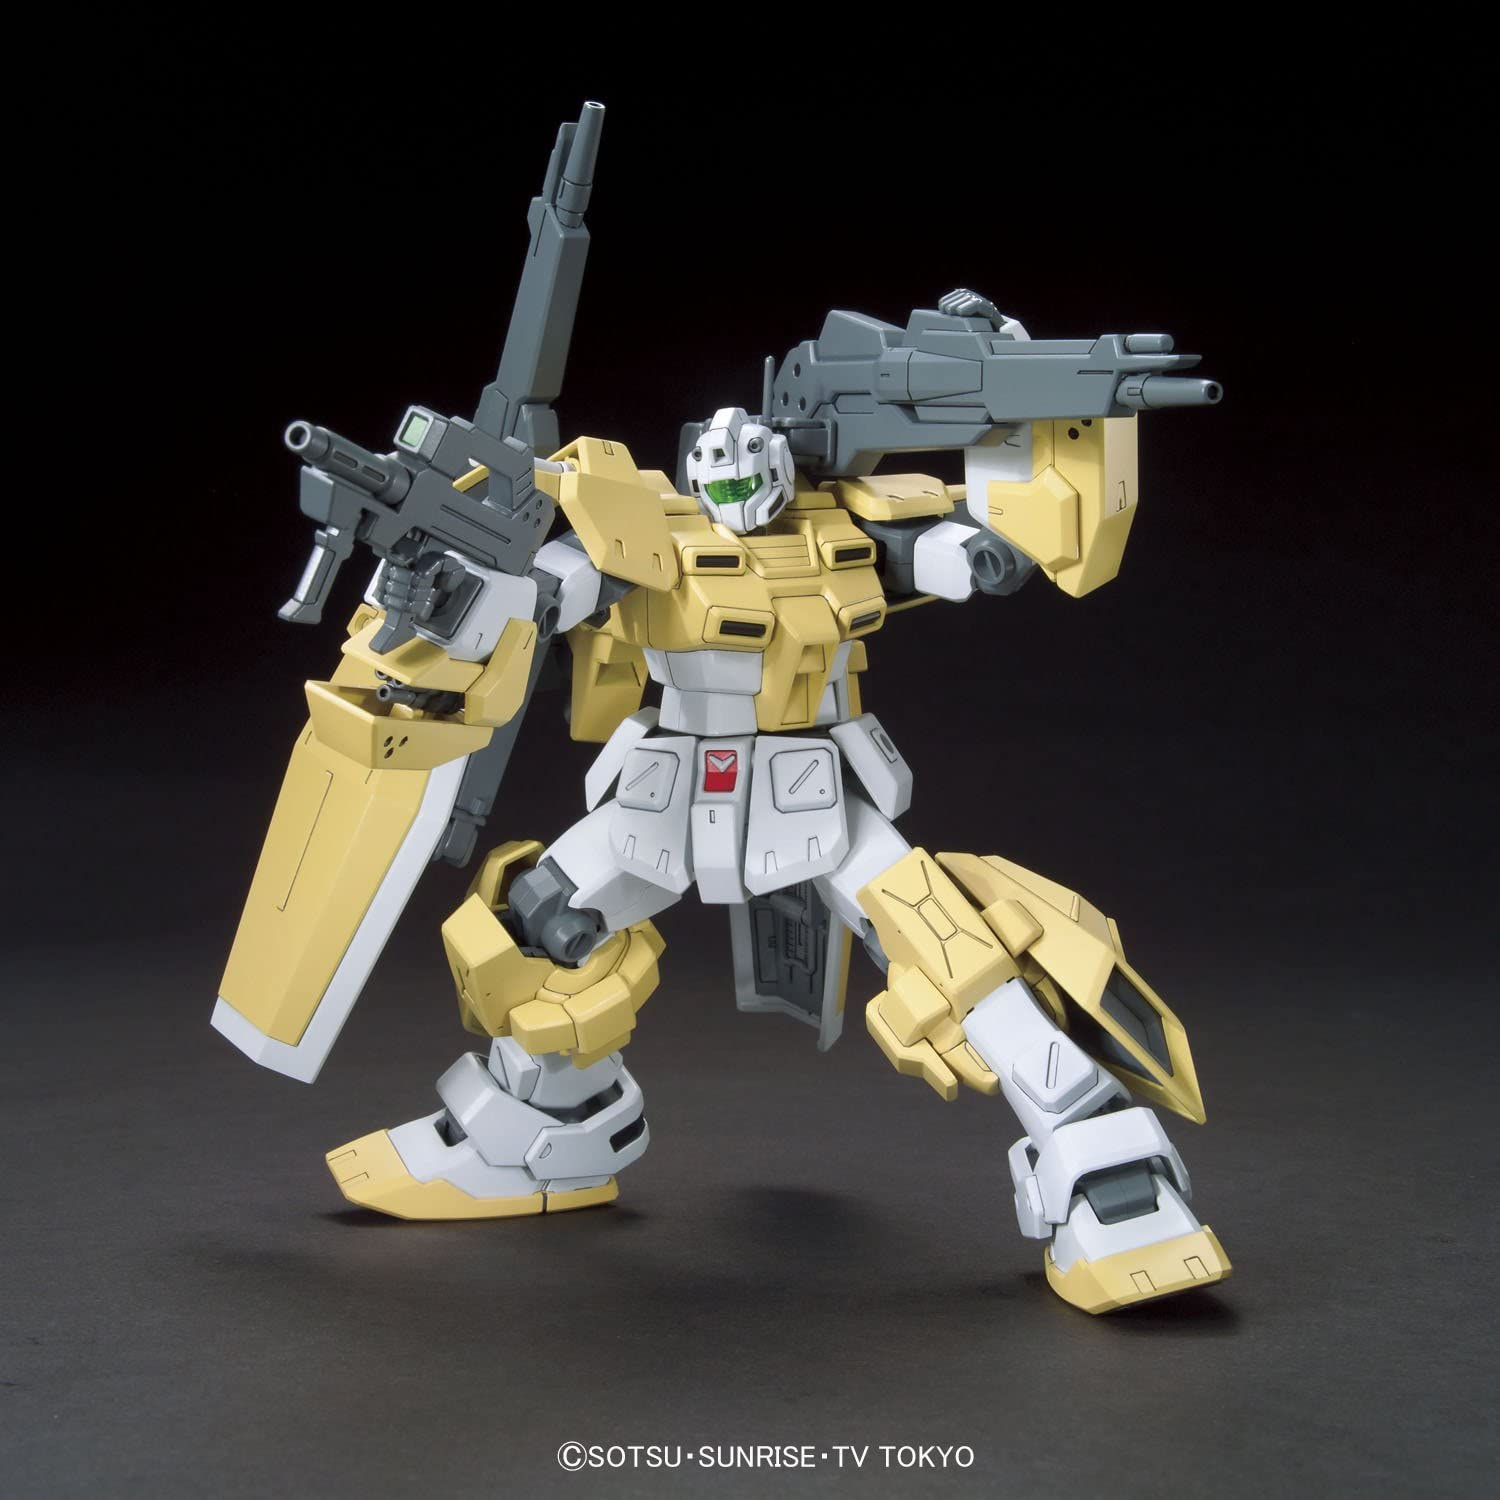 Bandai Hobby HGBF Powered GM Cardigan Gundam Build Fighters Try Action Figure 1//144 Scale